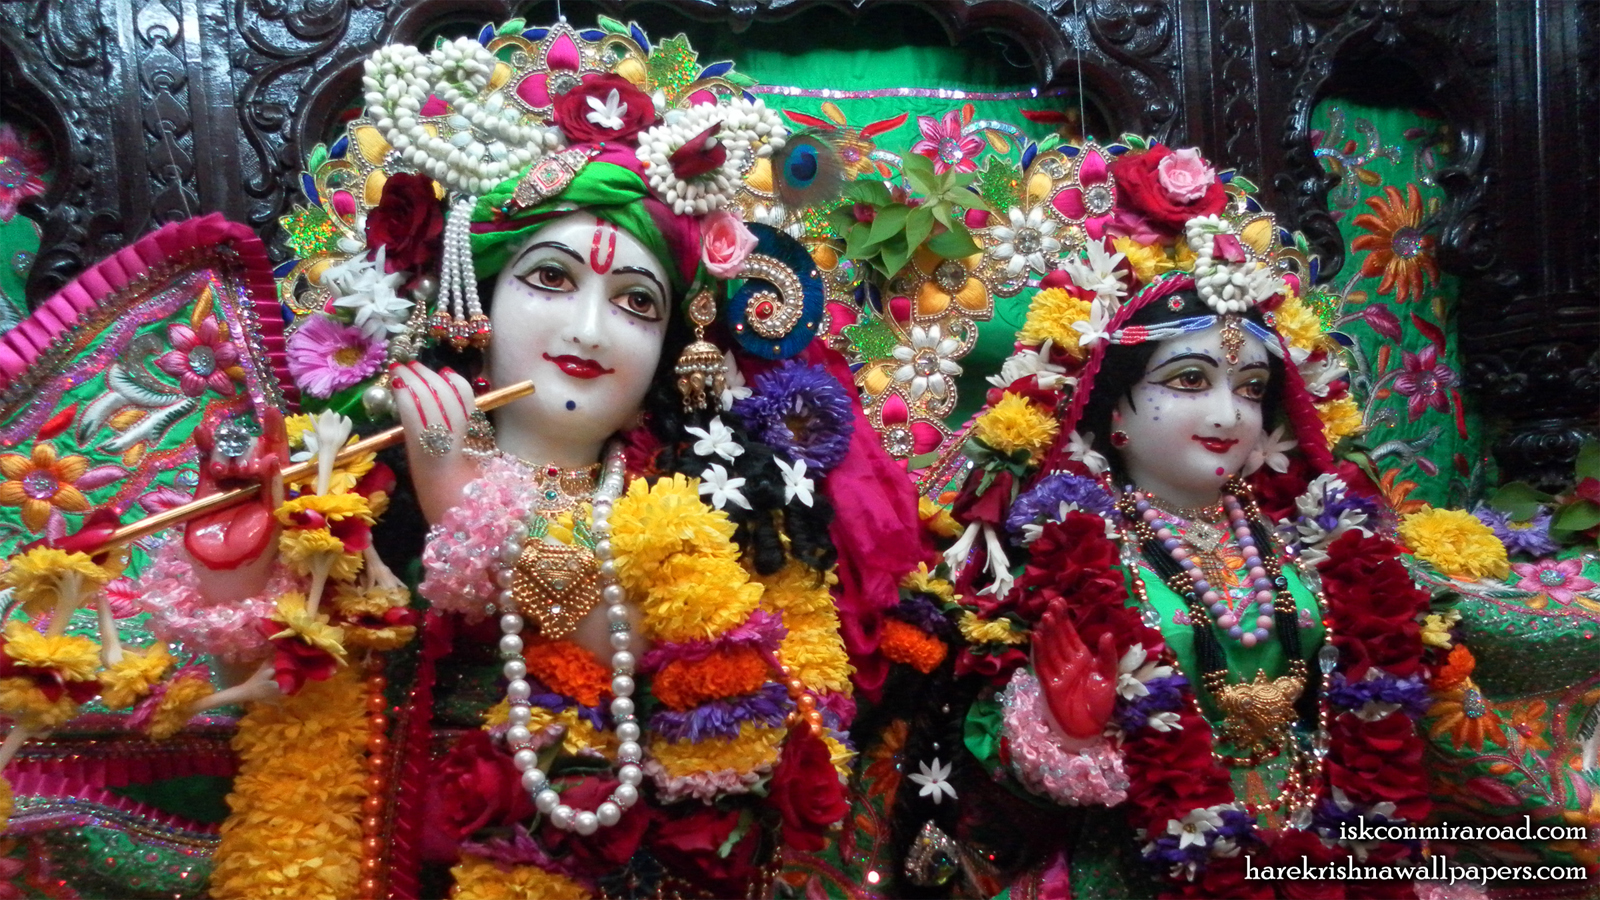 Sri Sri Radha Giridhari Close up Wallpaper (024) Size 1600x900 Download